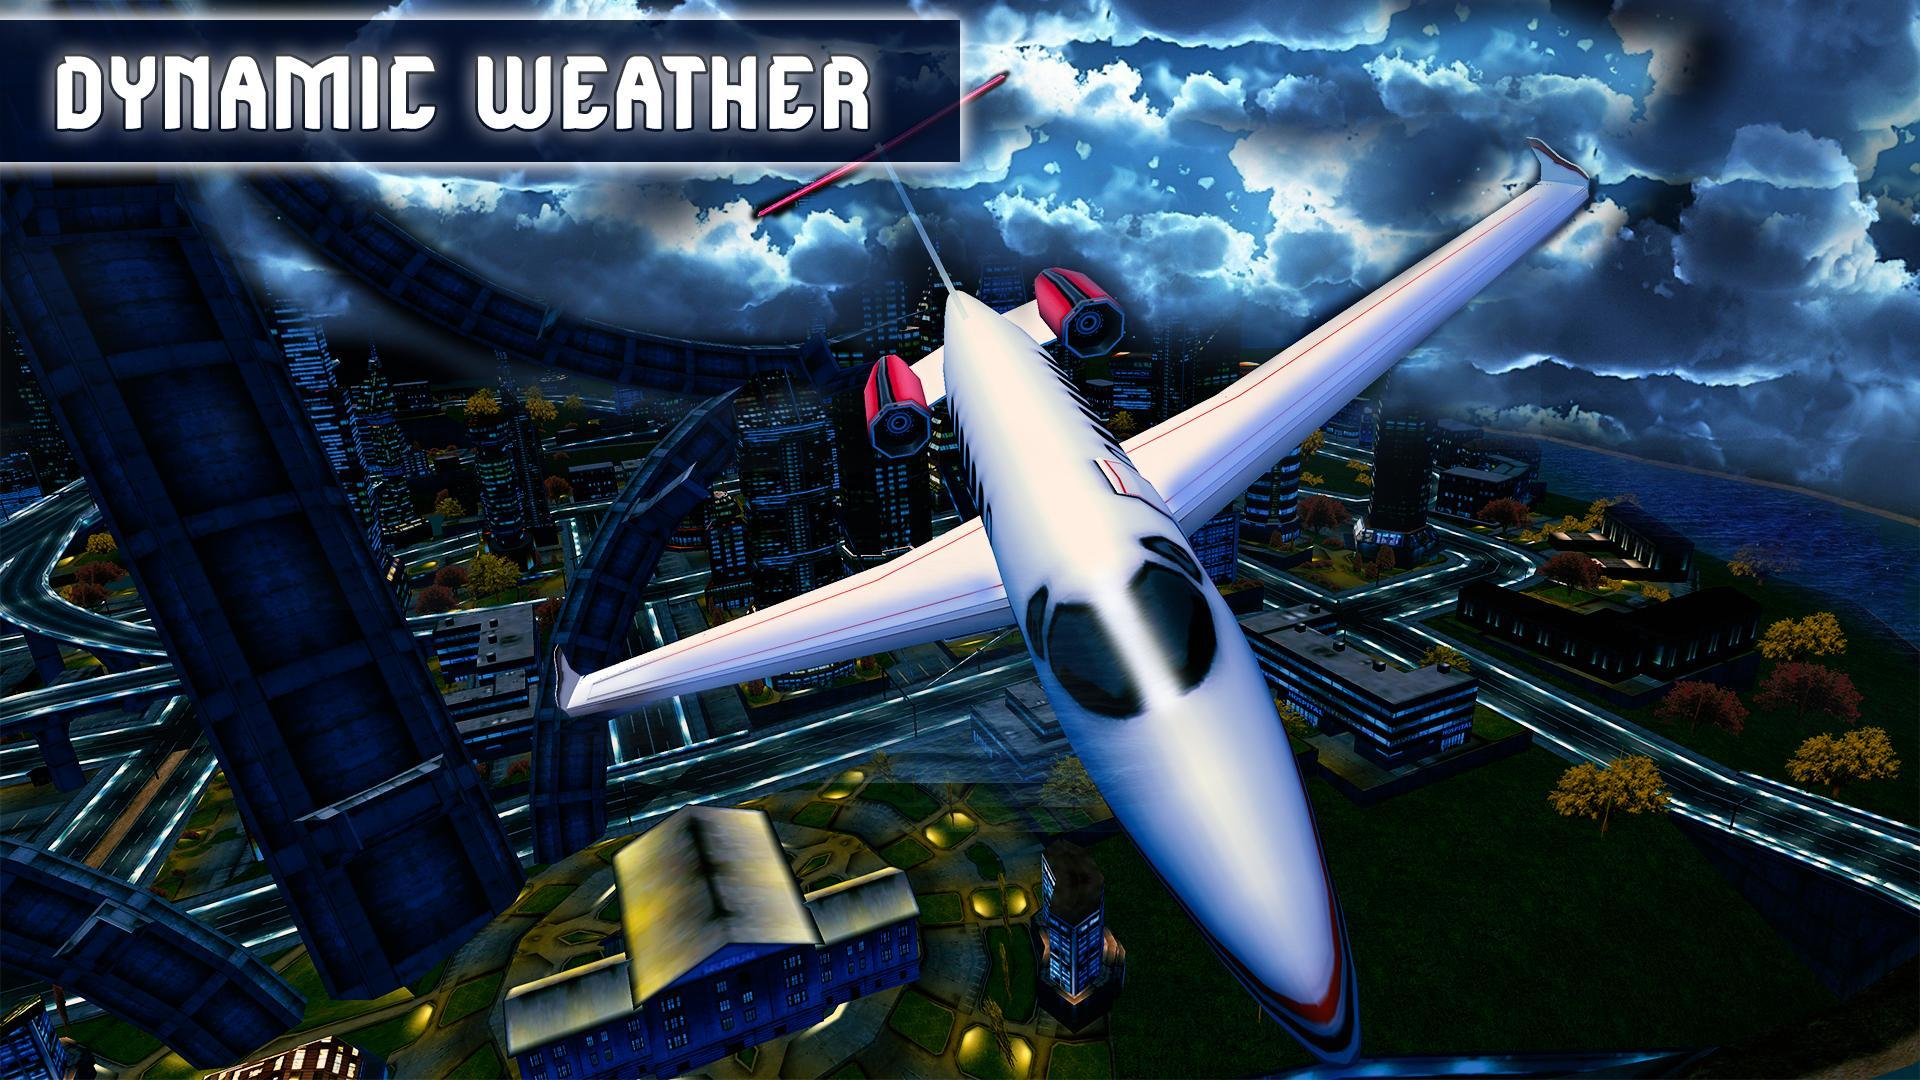 Airplane Crazy Flying Simulator 3D 2018 for Android - APK